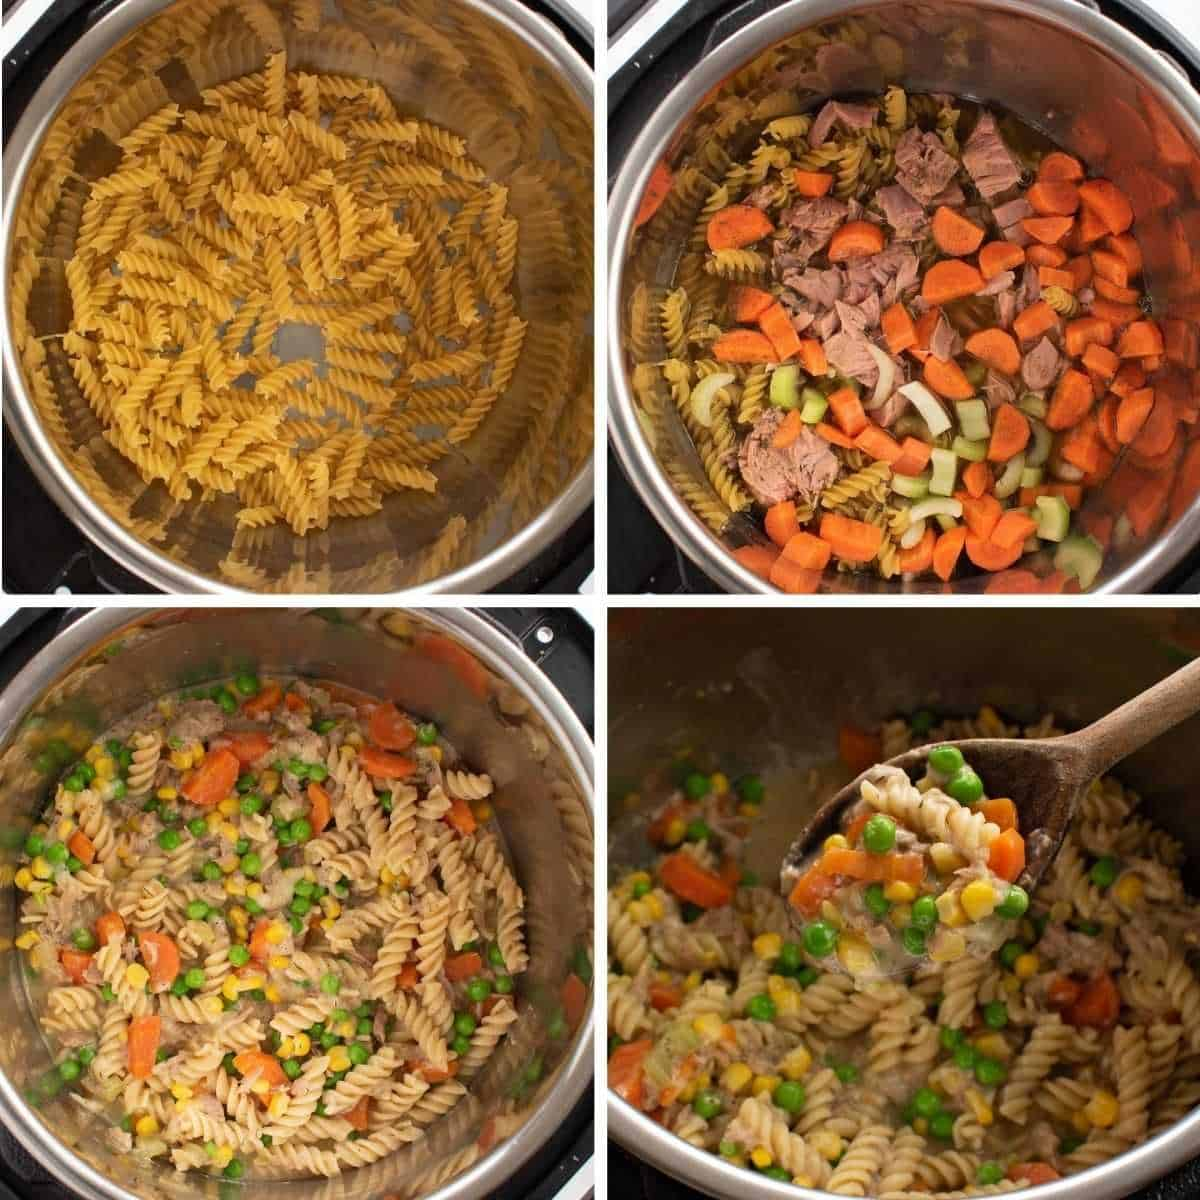 Step by step process showing how to make tuna casserole in an instant pot.